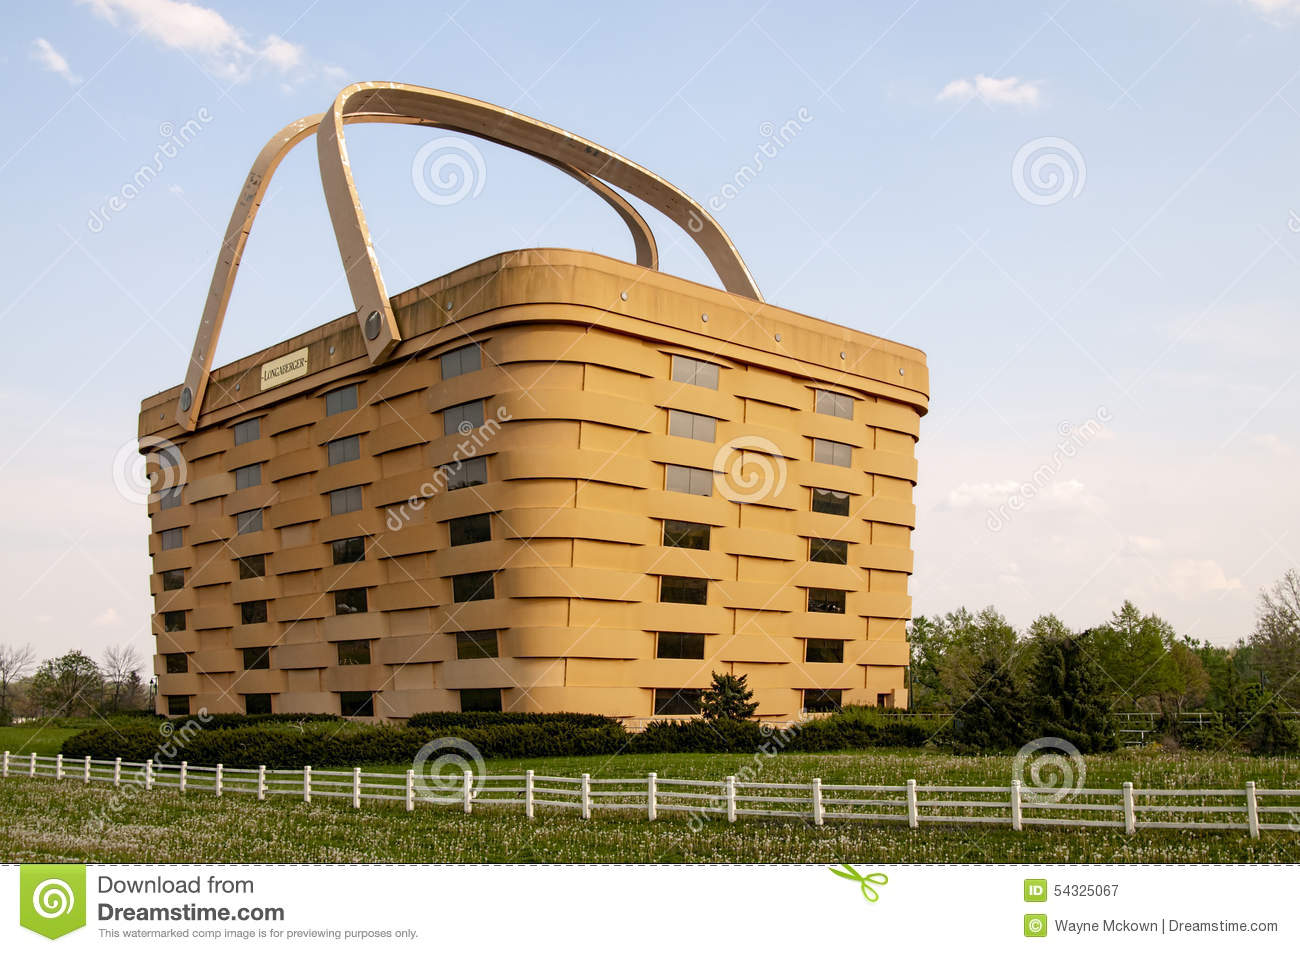 Longaberger Picnic Basket Building